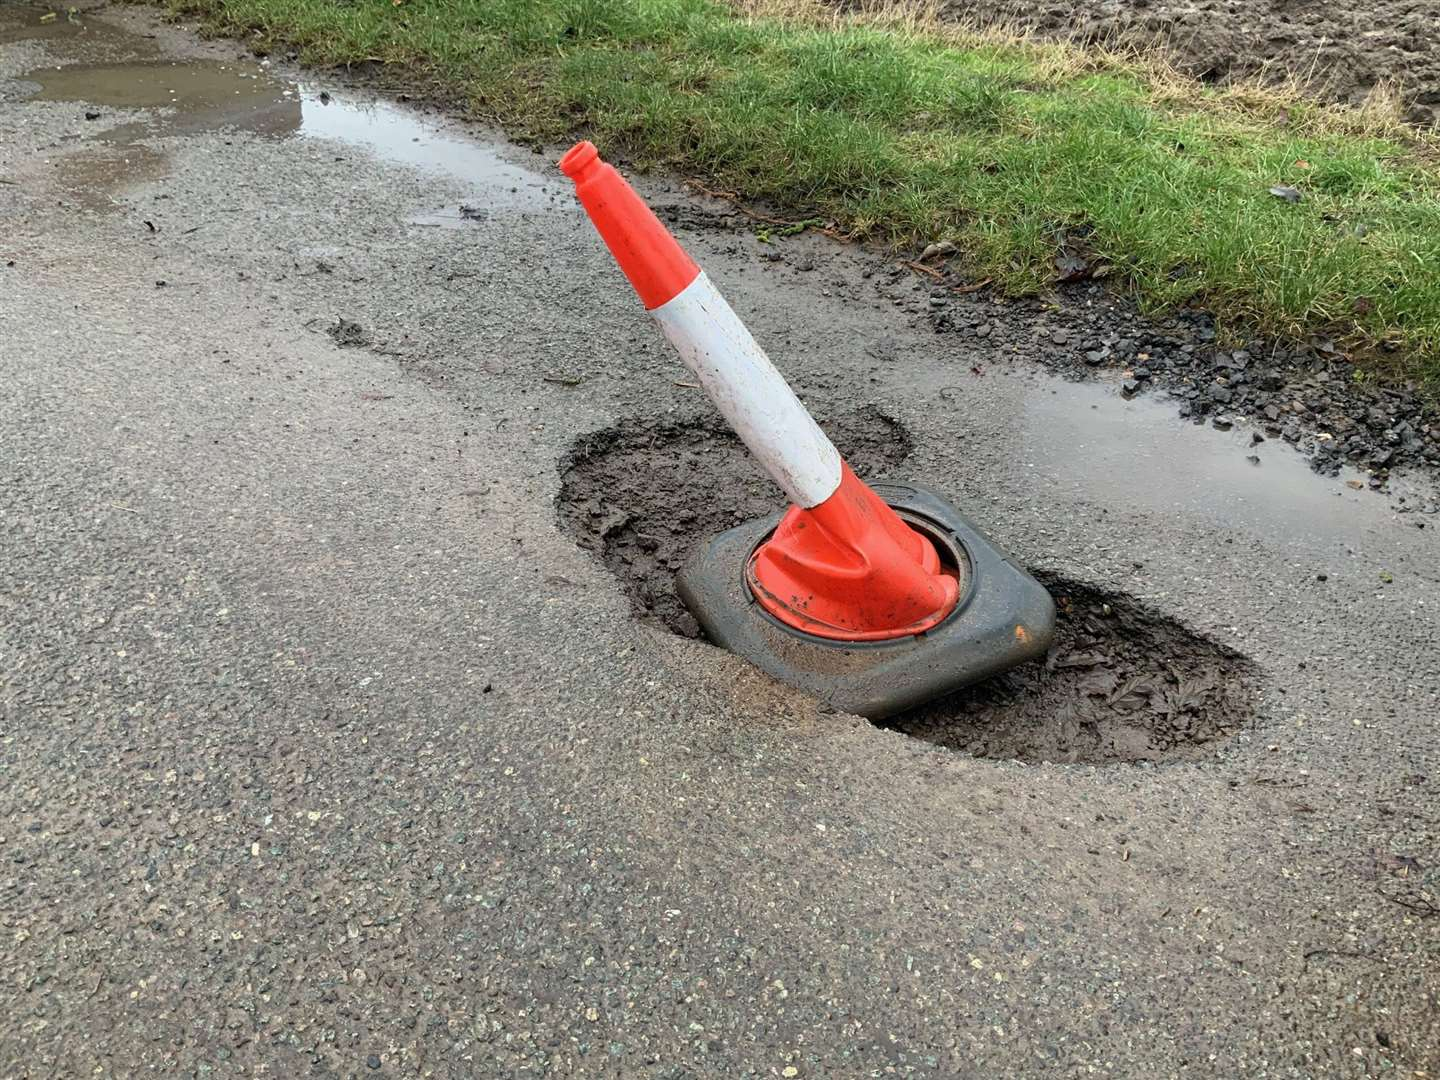 The AA says a widespread effort is needed to fix 'crumbling streets'